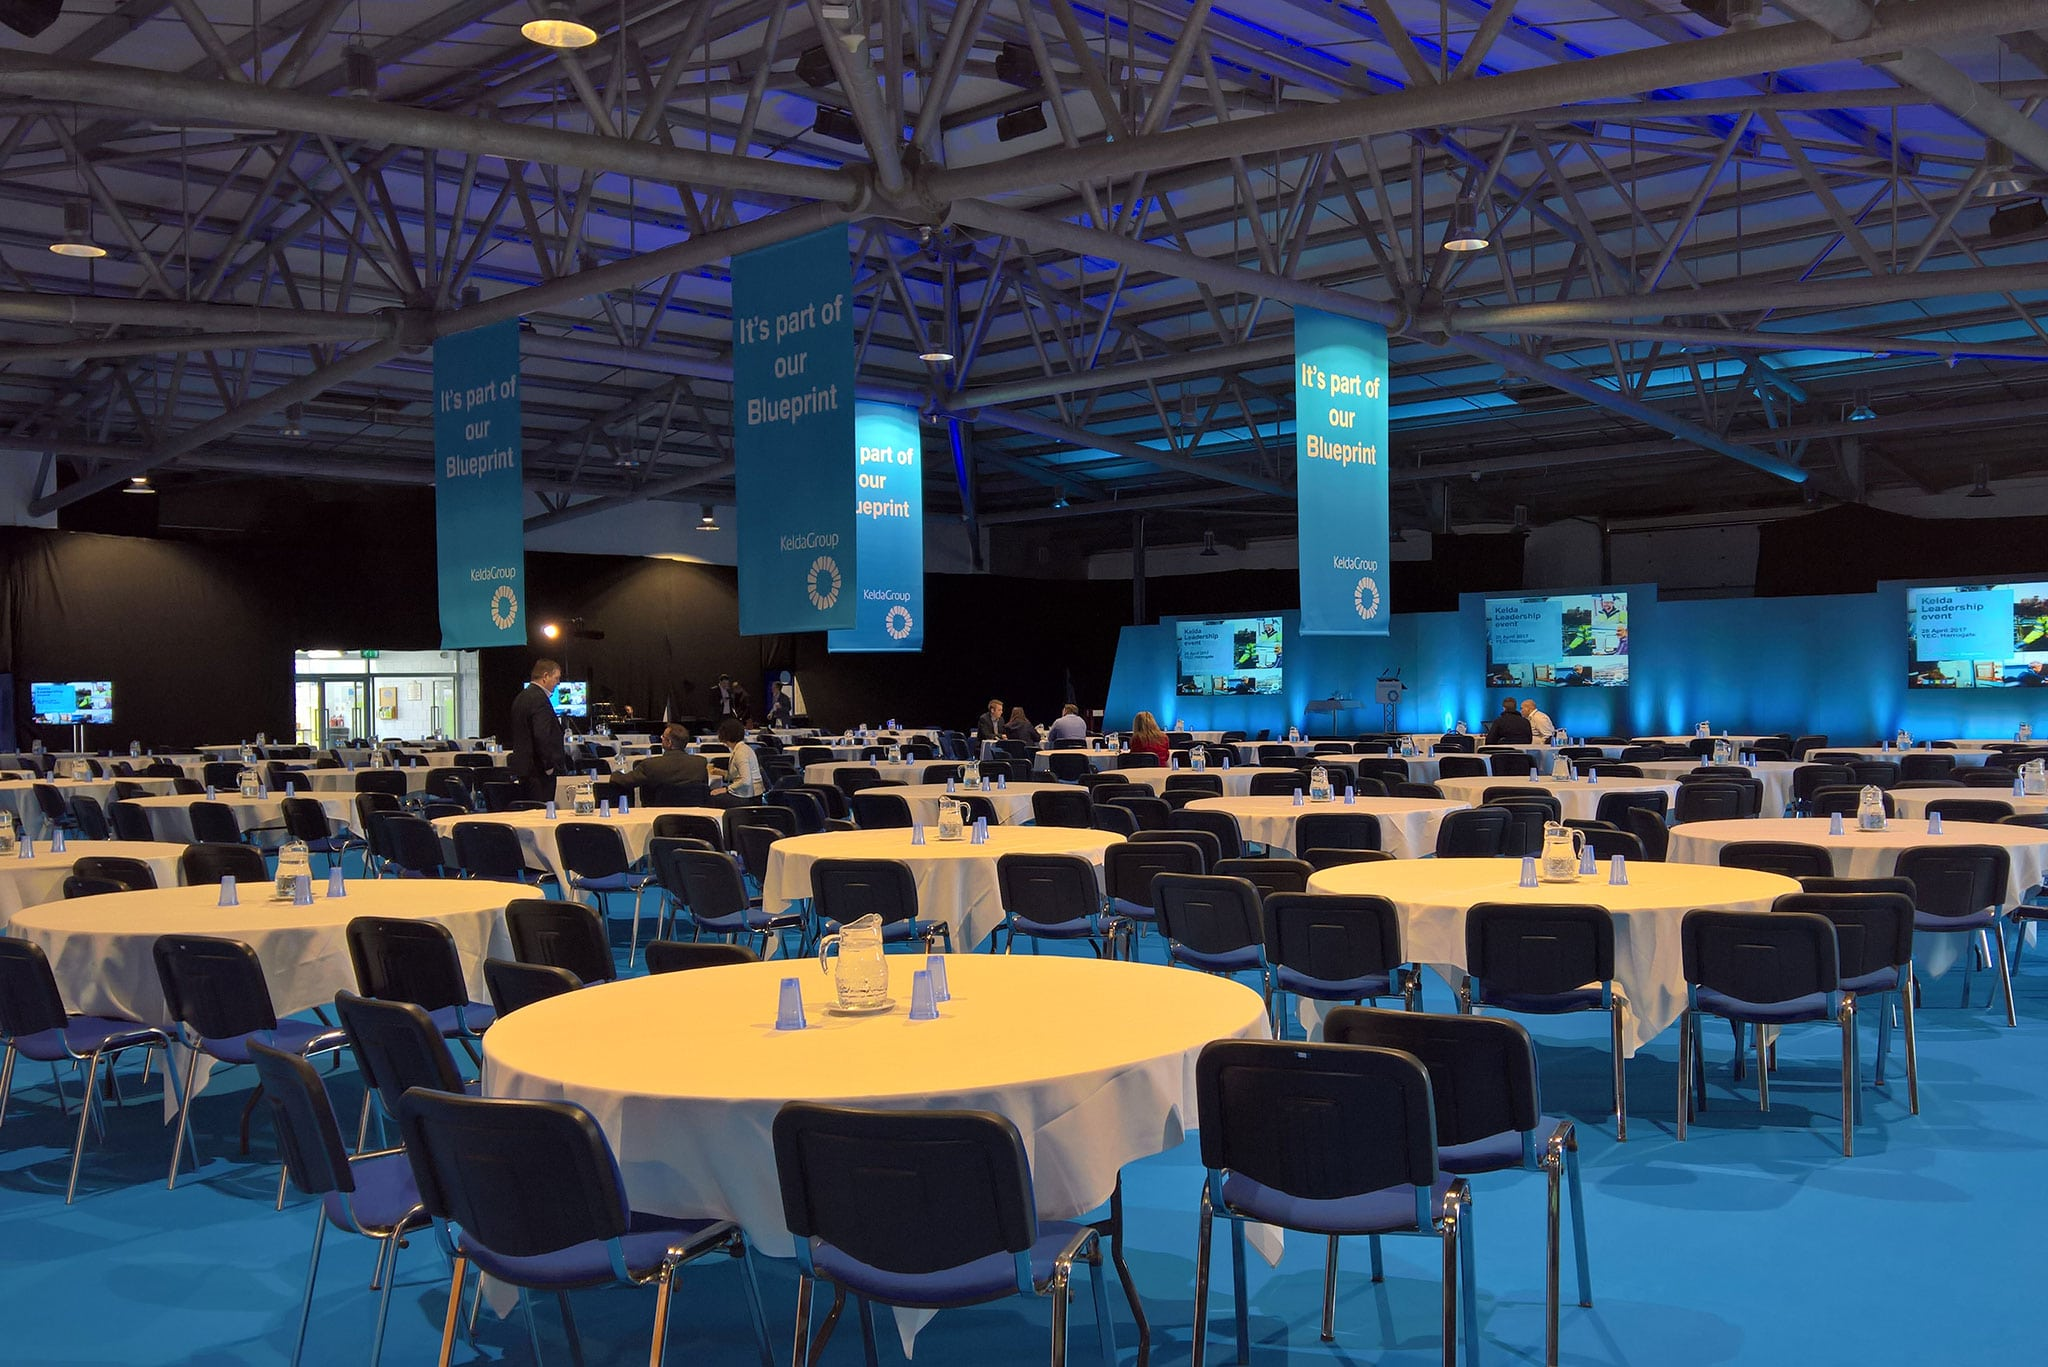 Conference seating in Hall 2 from 100 - 1600 delegates at the Yorkshire Event Centre